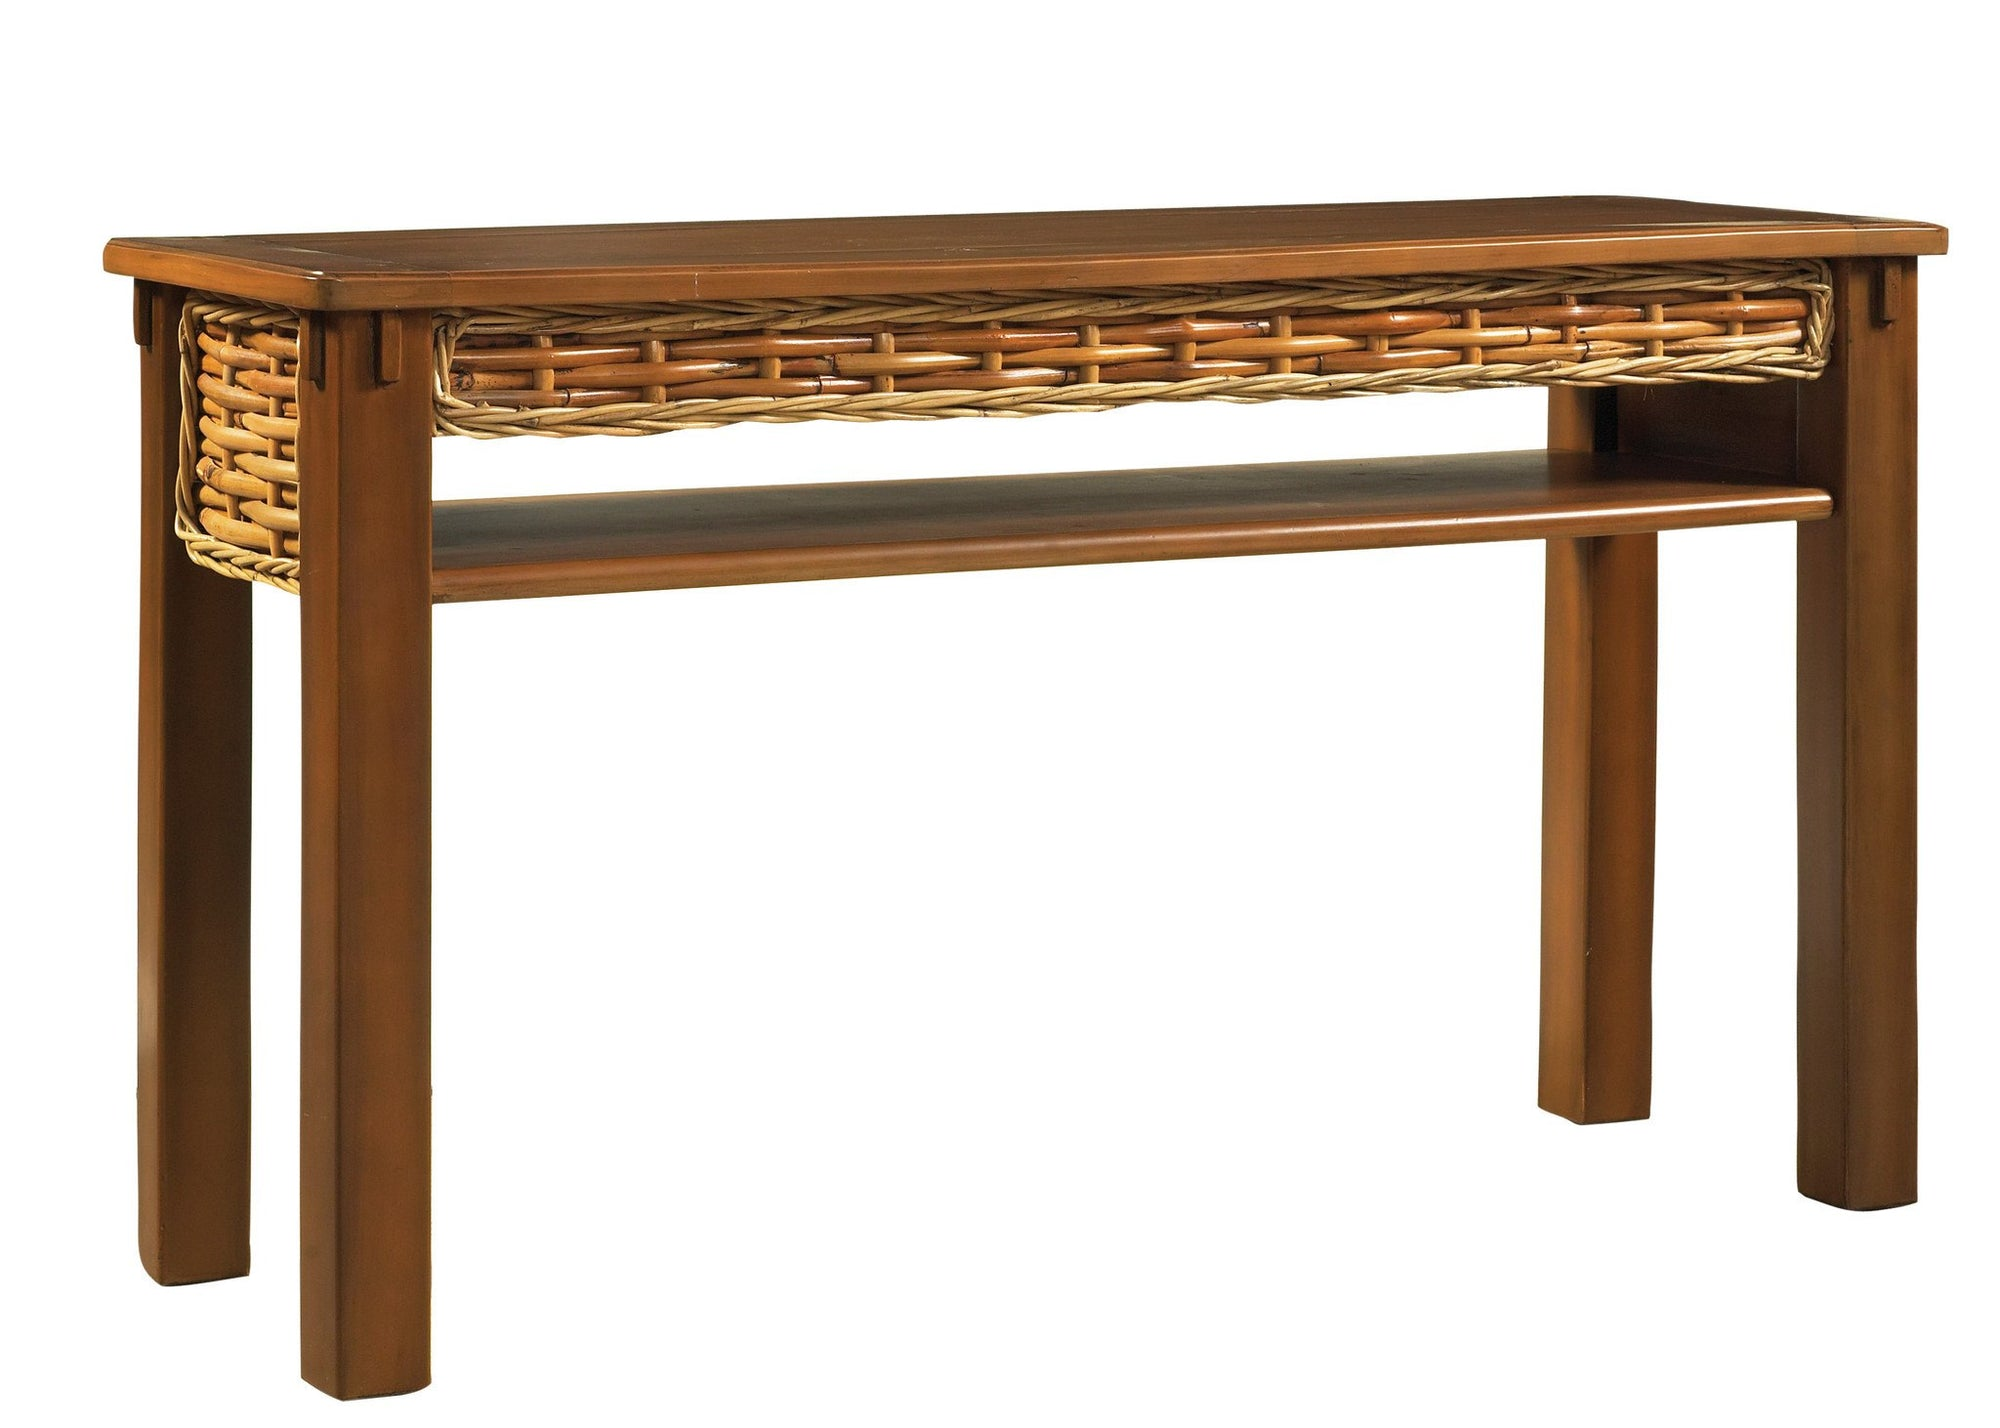 Designer Wicker & Rattan By Tribor Freeport Console Table by Designer Wicker from Tribor Console Table - Rattan Imports